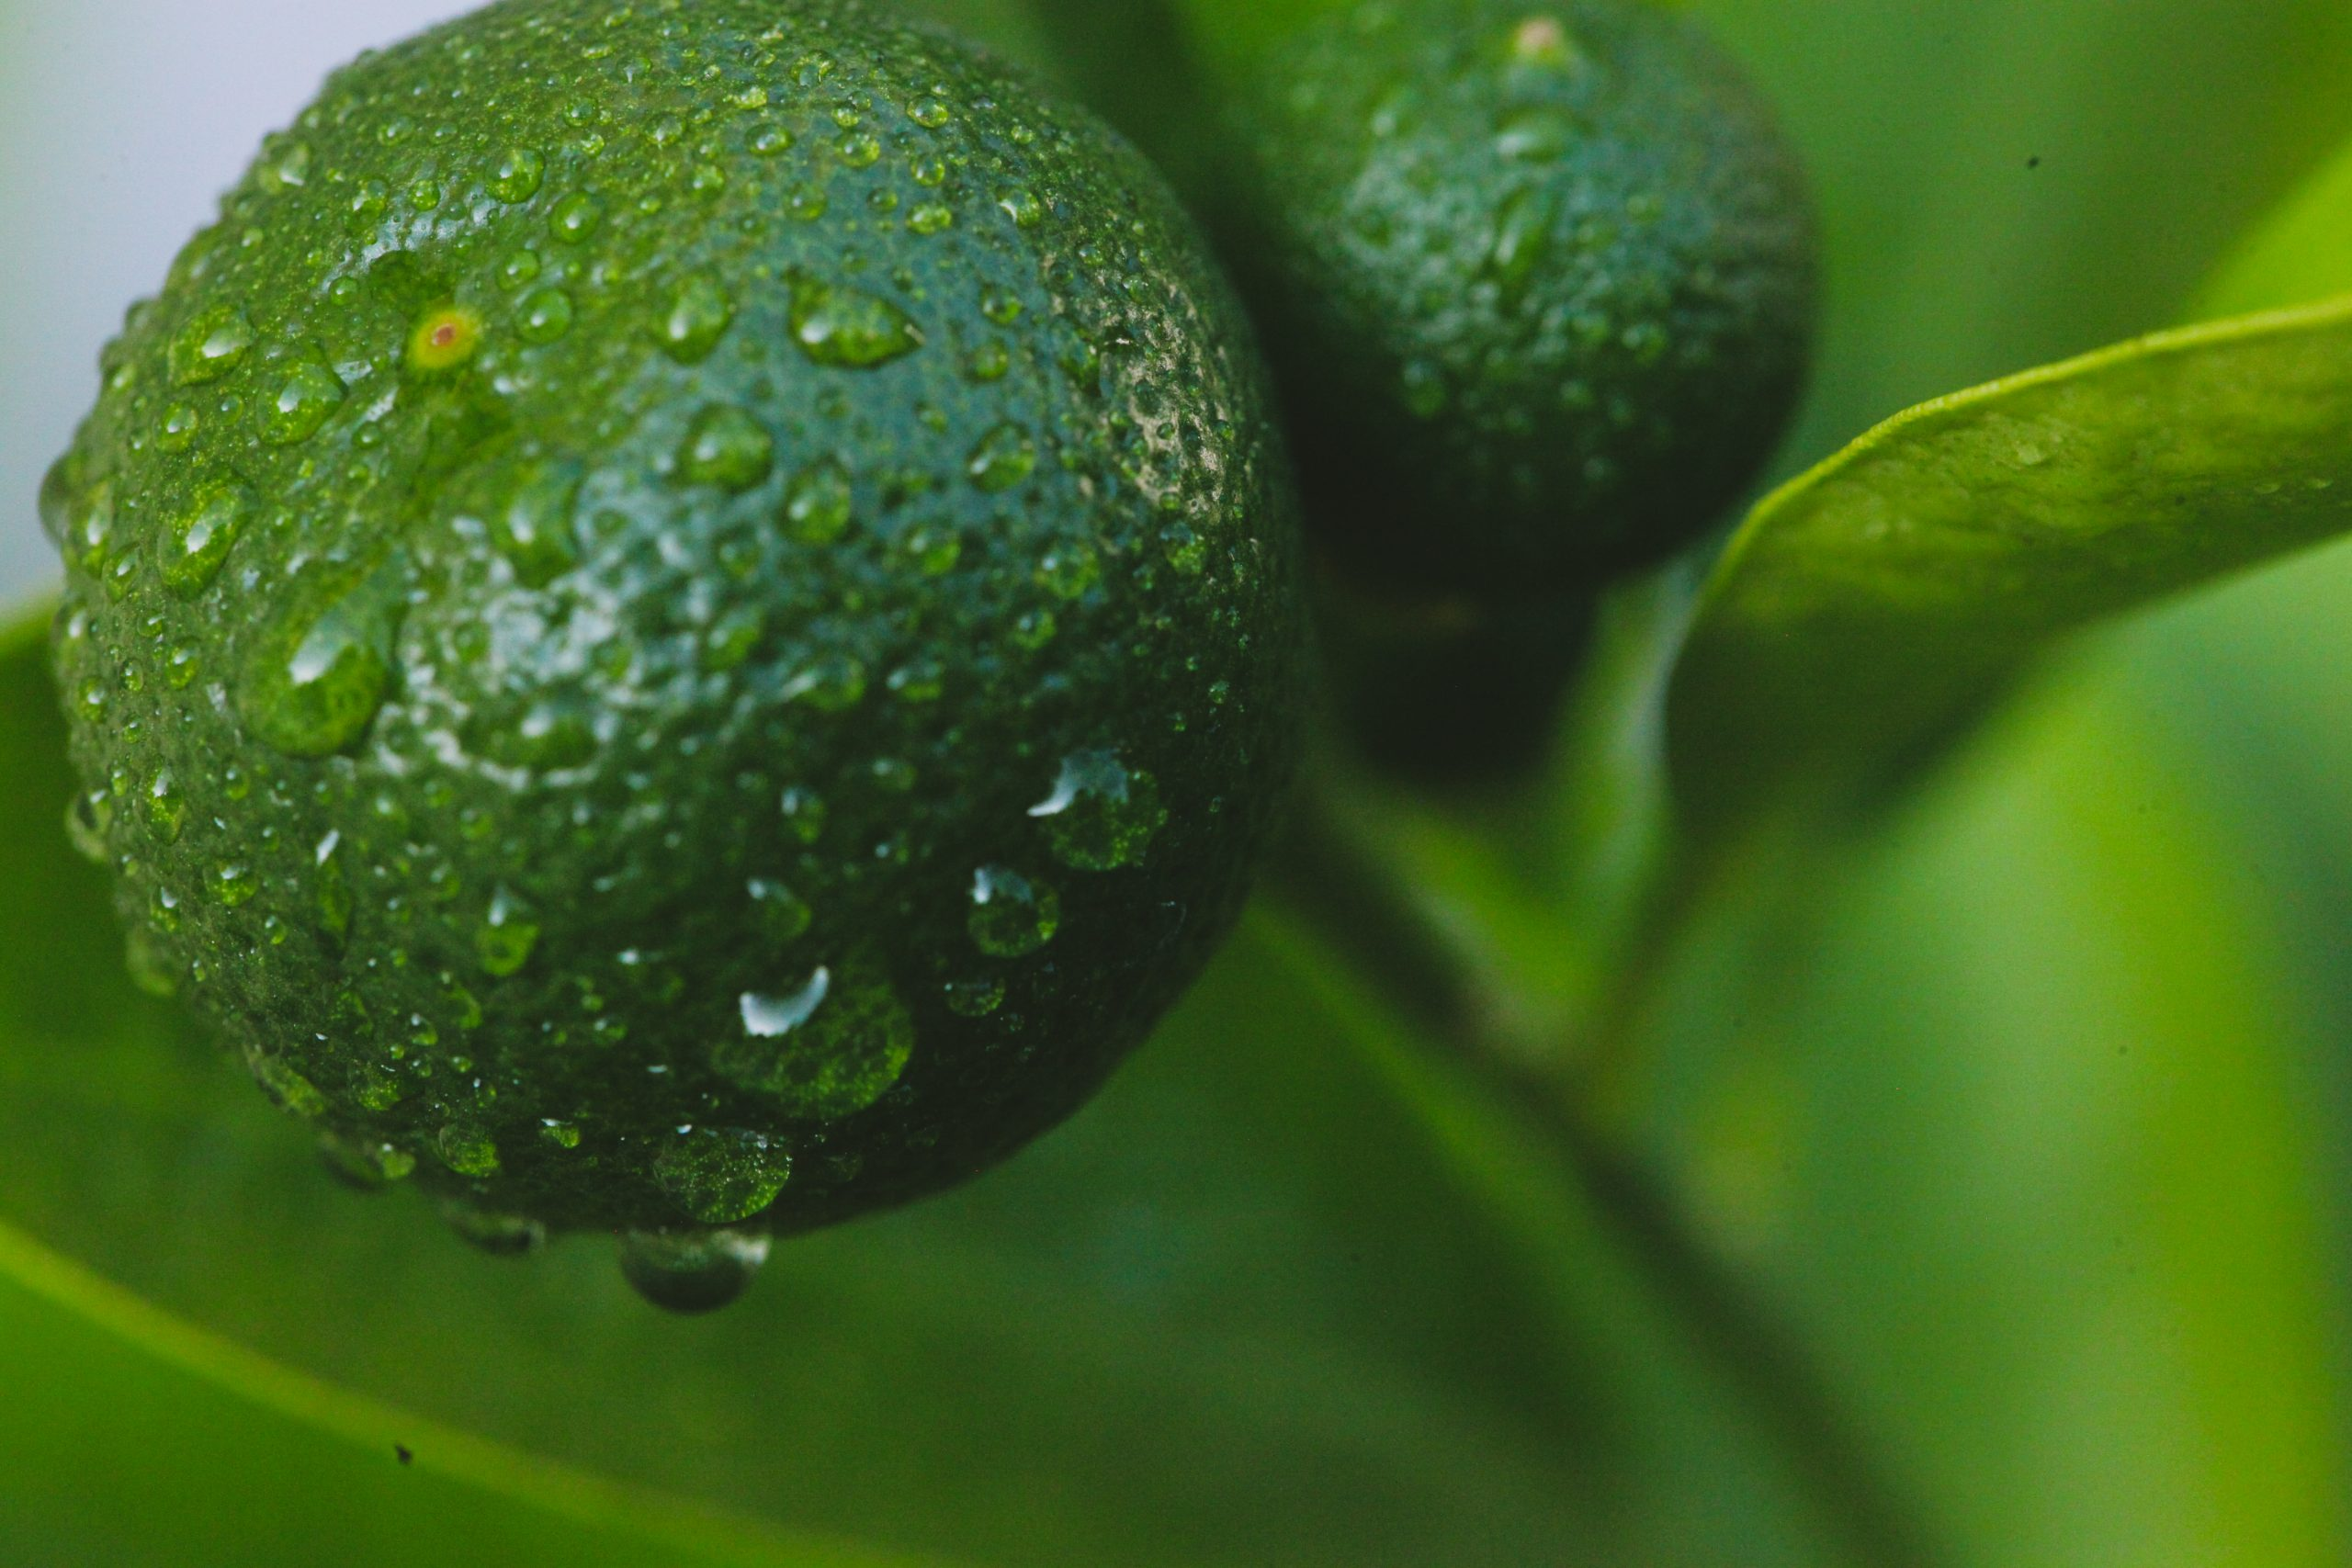 Water drops on oranges